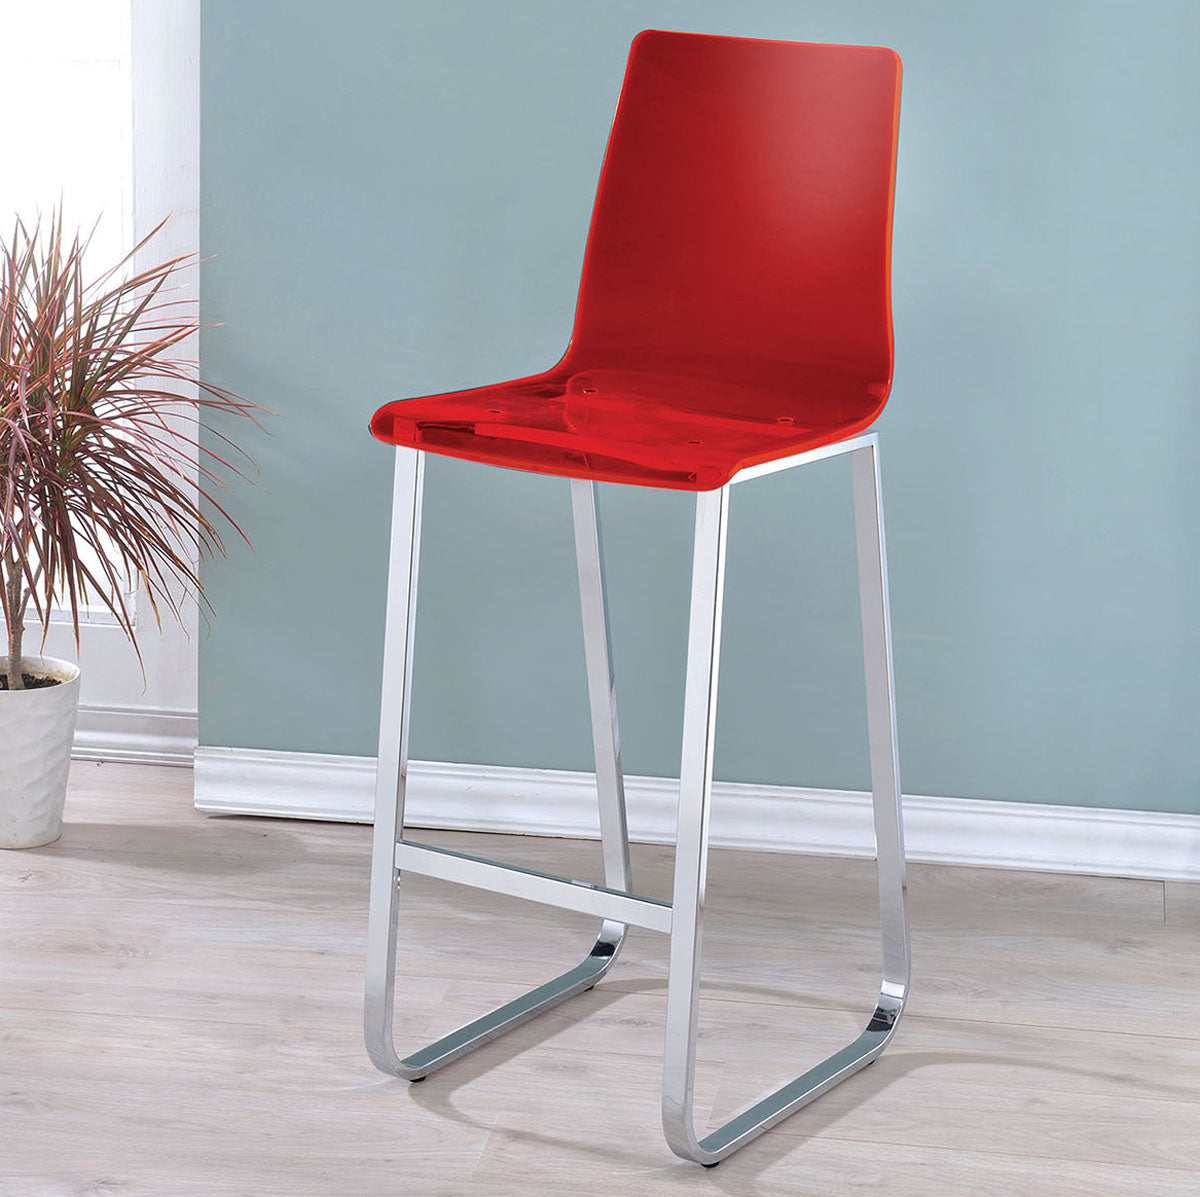 Xena CM3990RD-BC Contemporary Red Acrylic Bar Chair Set of 2